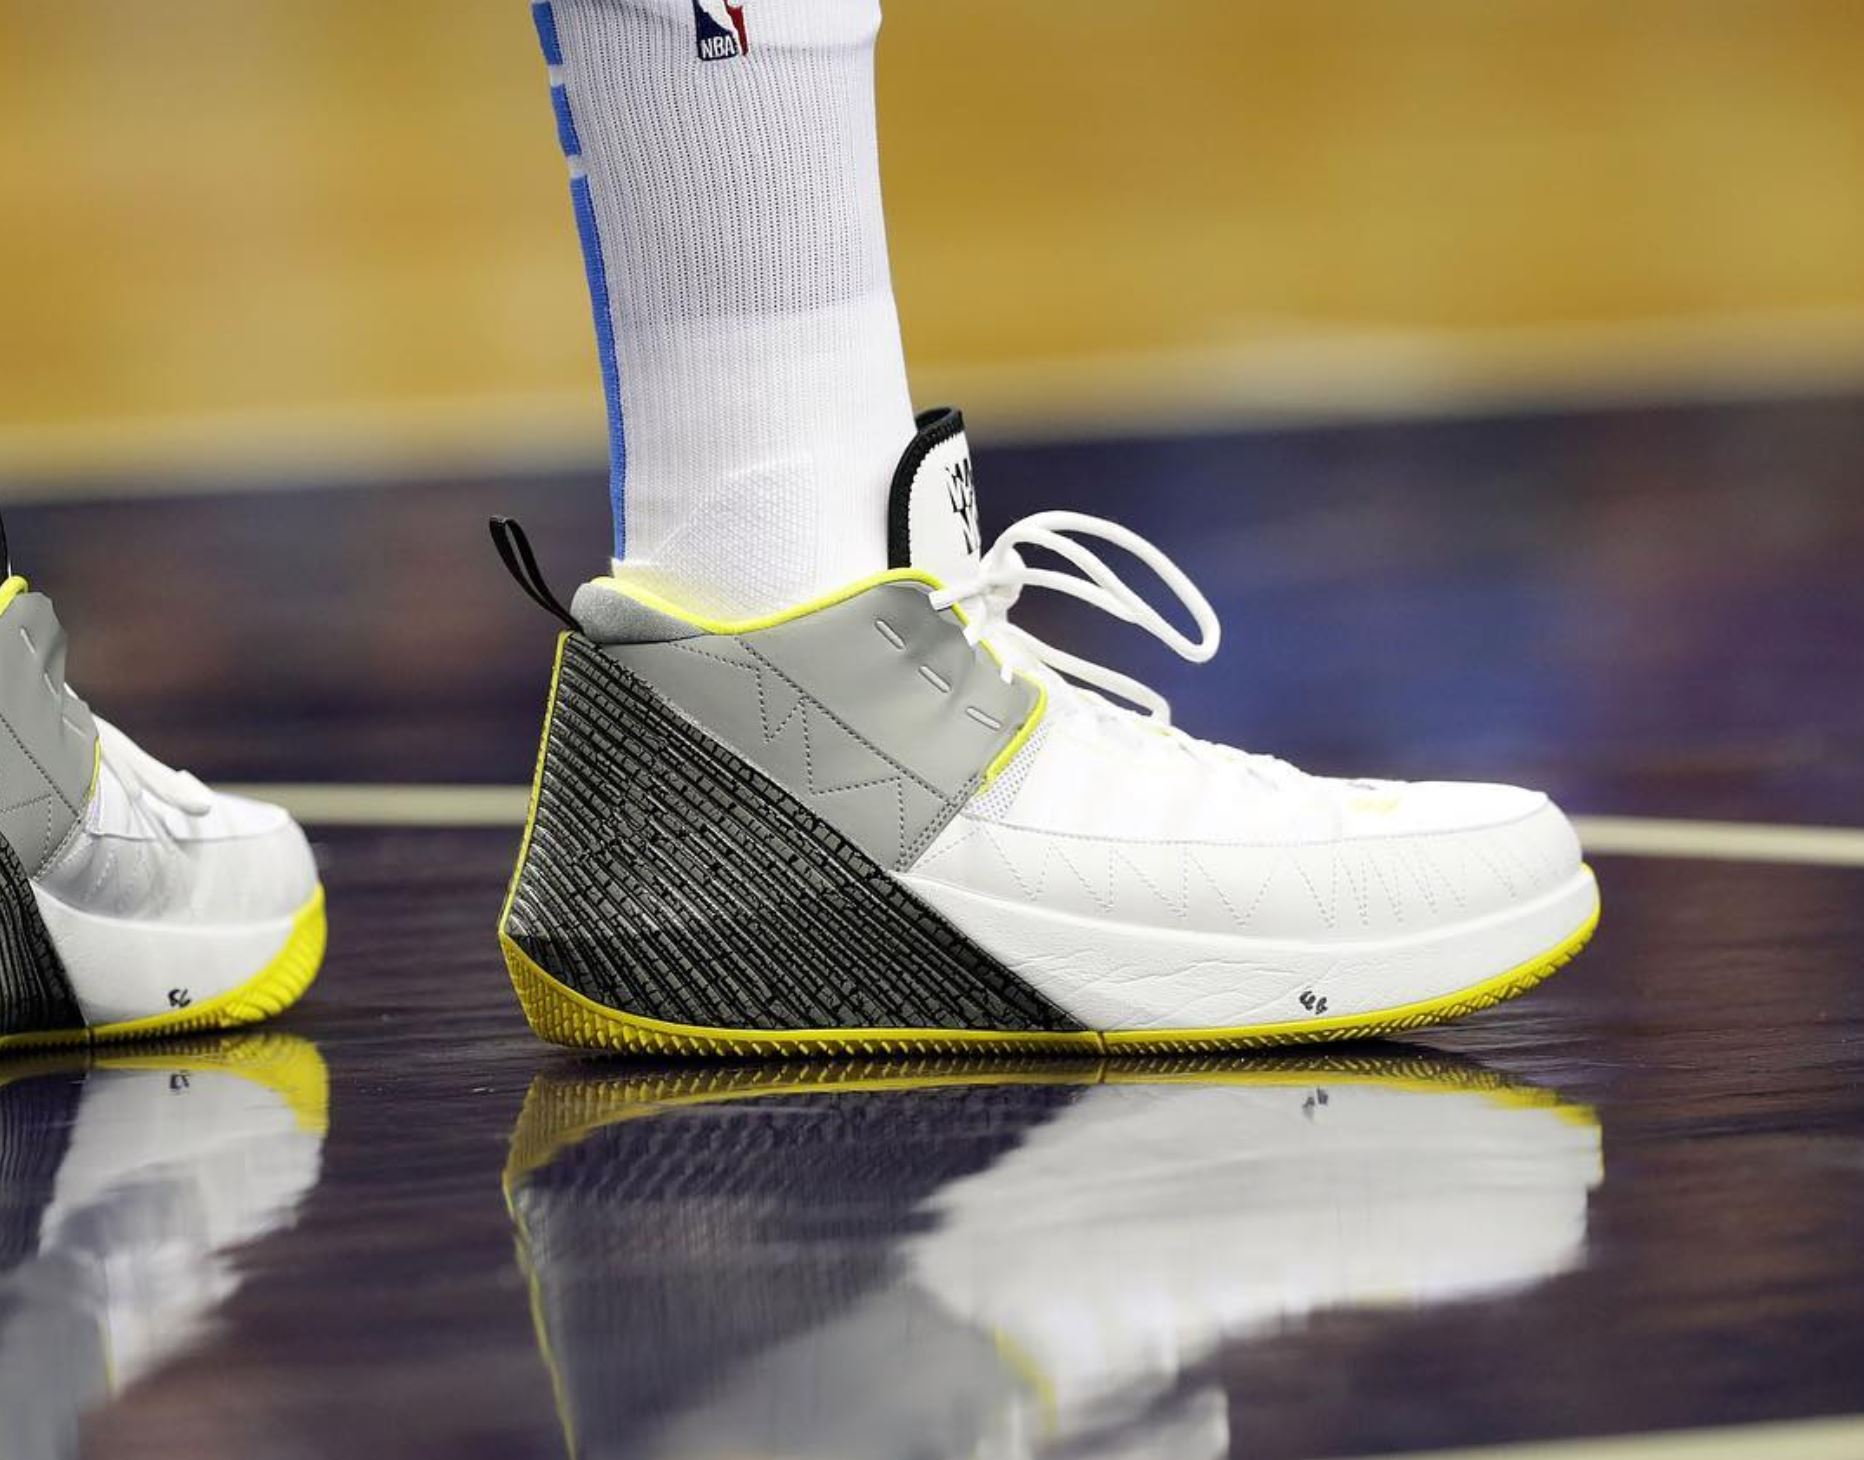 jordan why not zer0.1 chaos russell westbrook